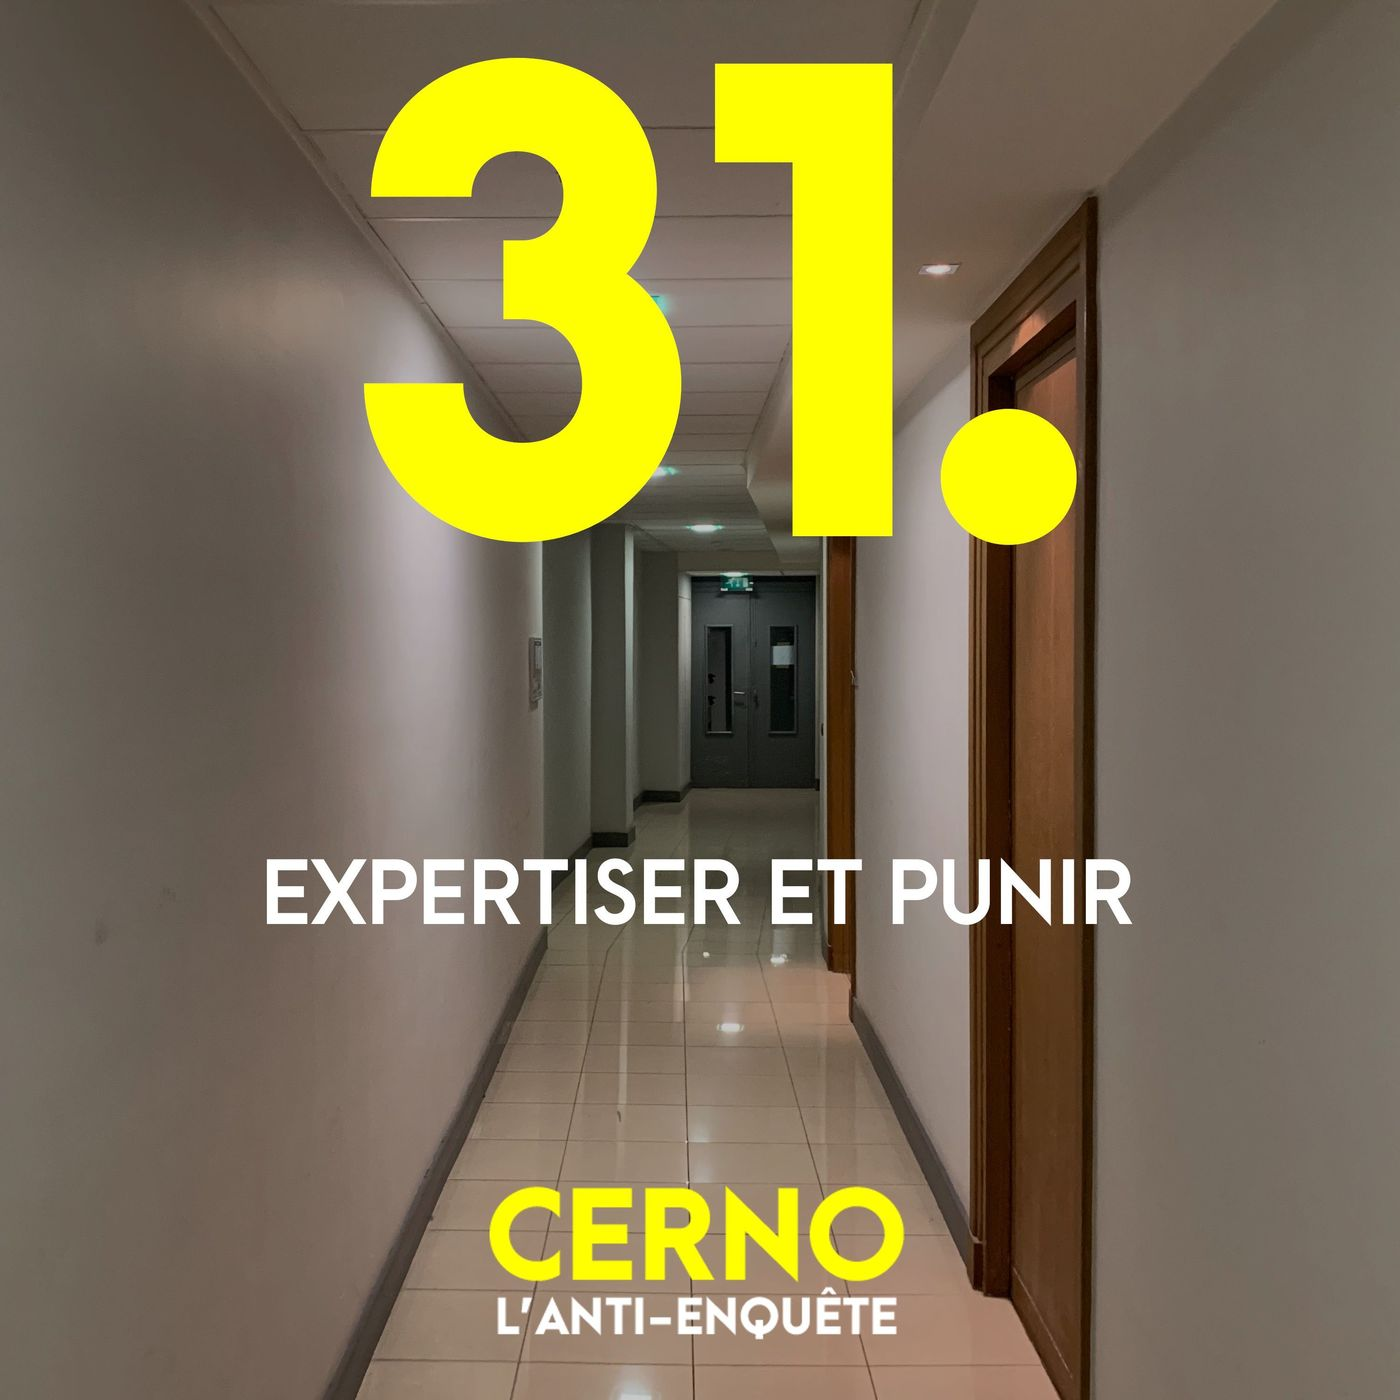 Episode 31 : Expertiser et punir